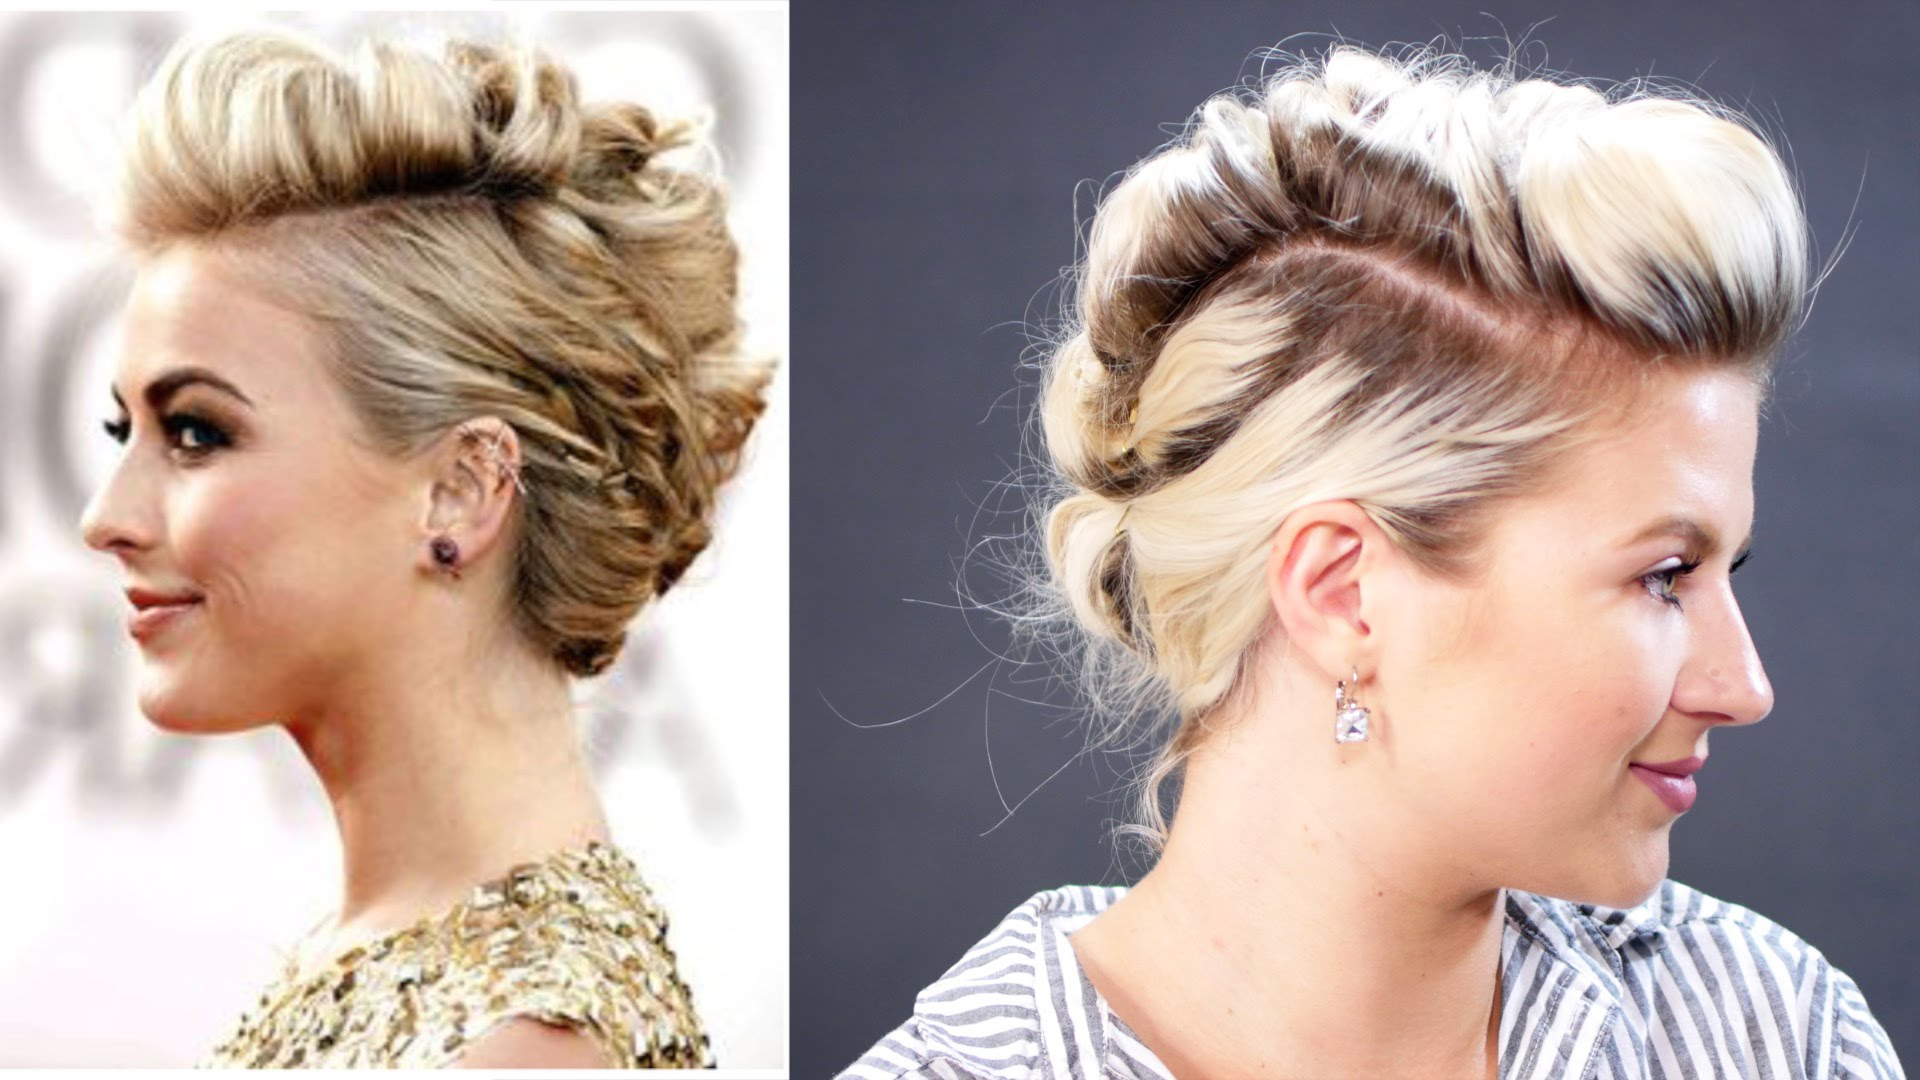 Discover Beauty & Sensitivity Of Female Braided Mohawk Updo Intended For Popular Braided Faux Mohawk Hairstyles For Women (View 7 of 20)